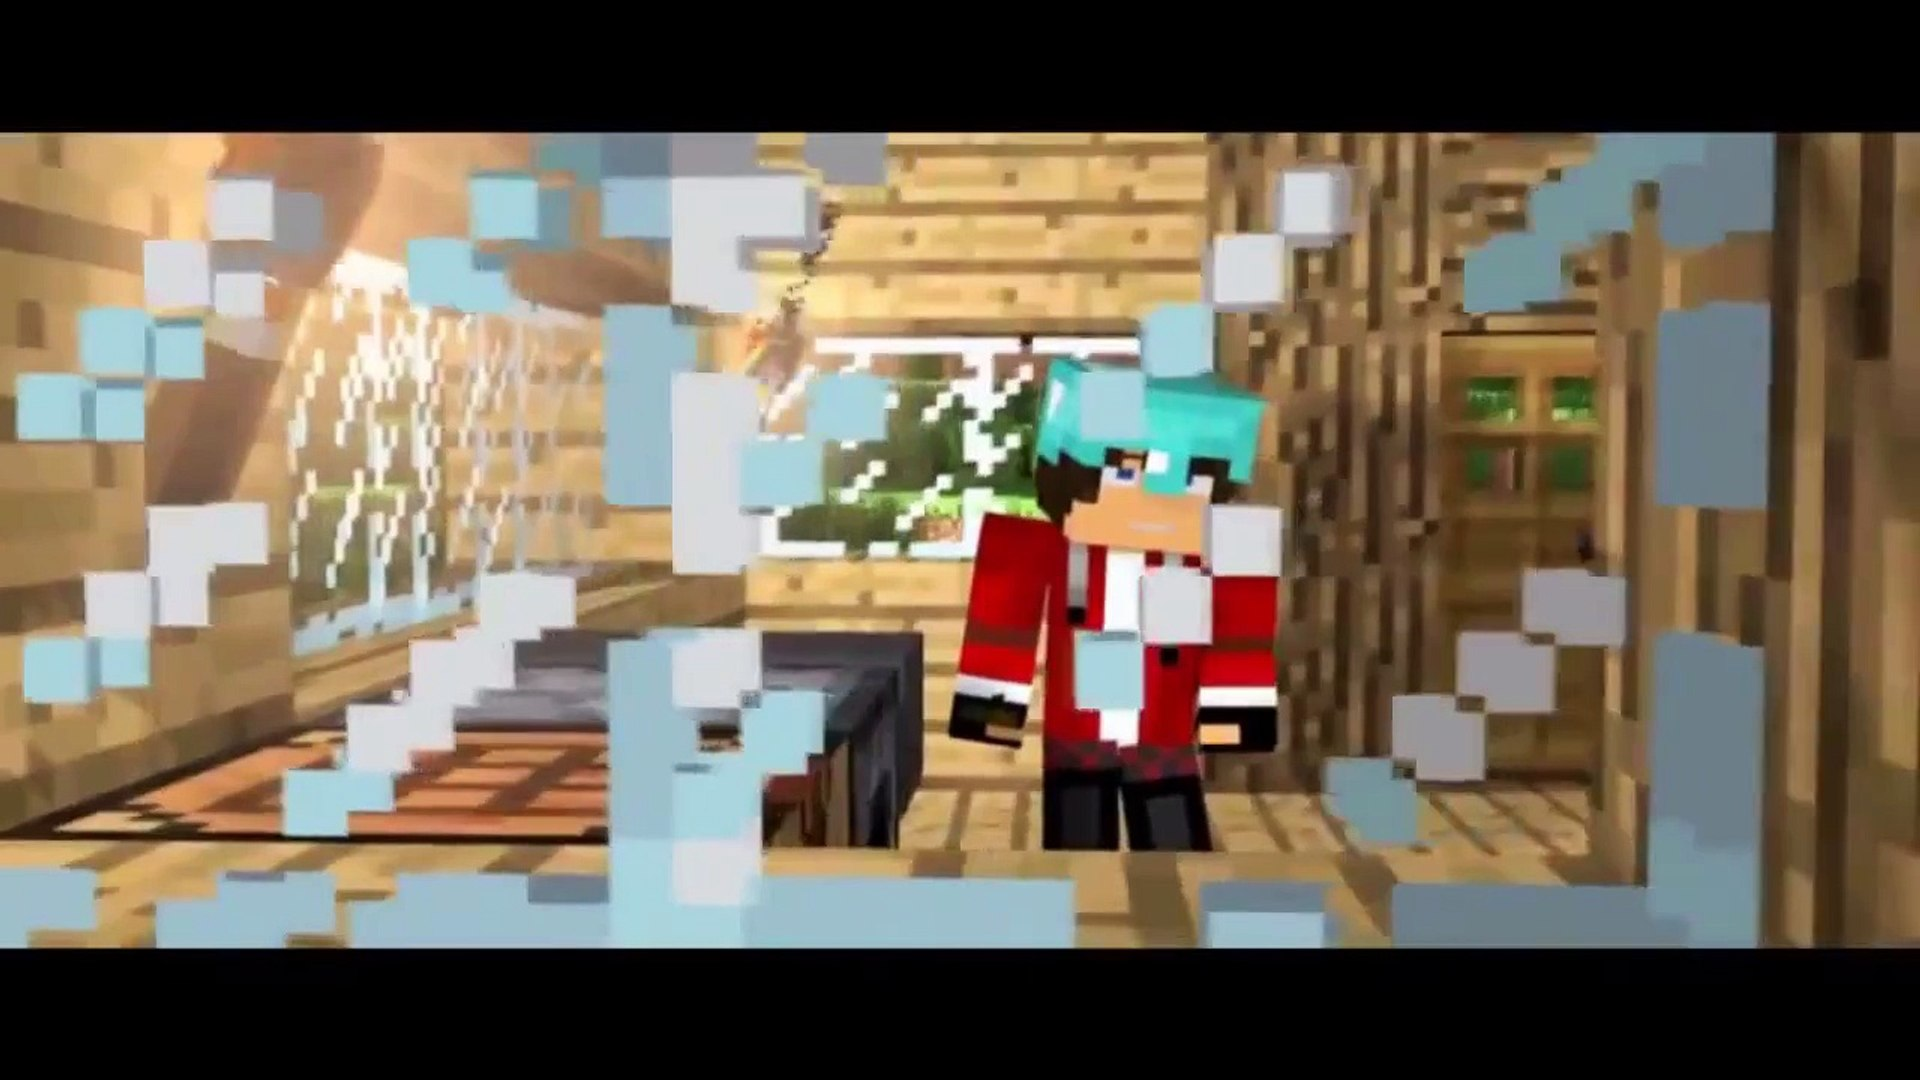 Top 2 Minecraft Song/Animation/Parody